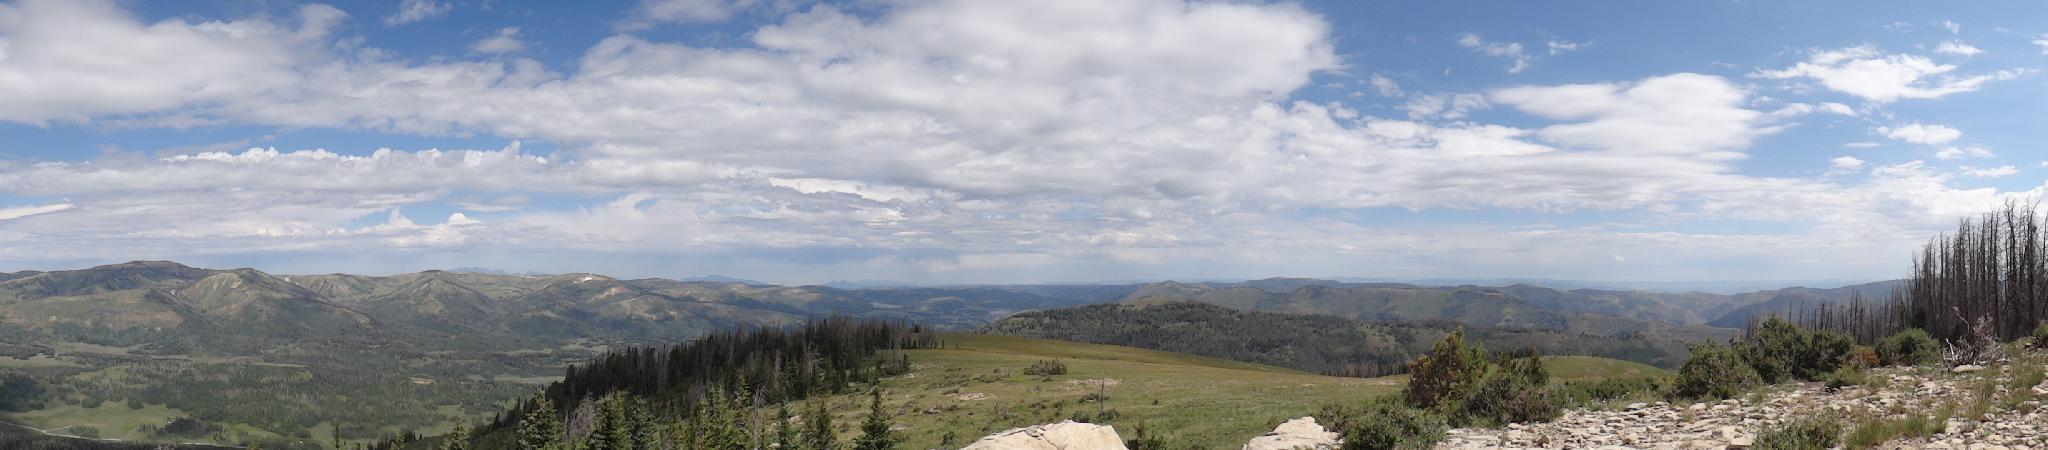 Panorama from East Mountain summit